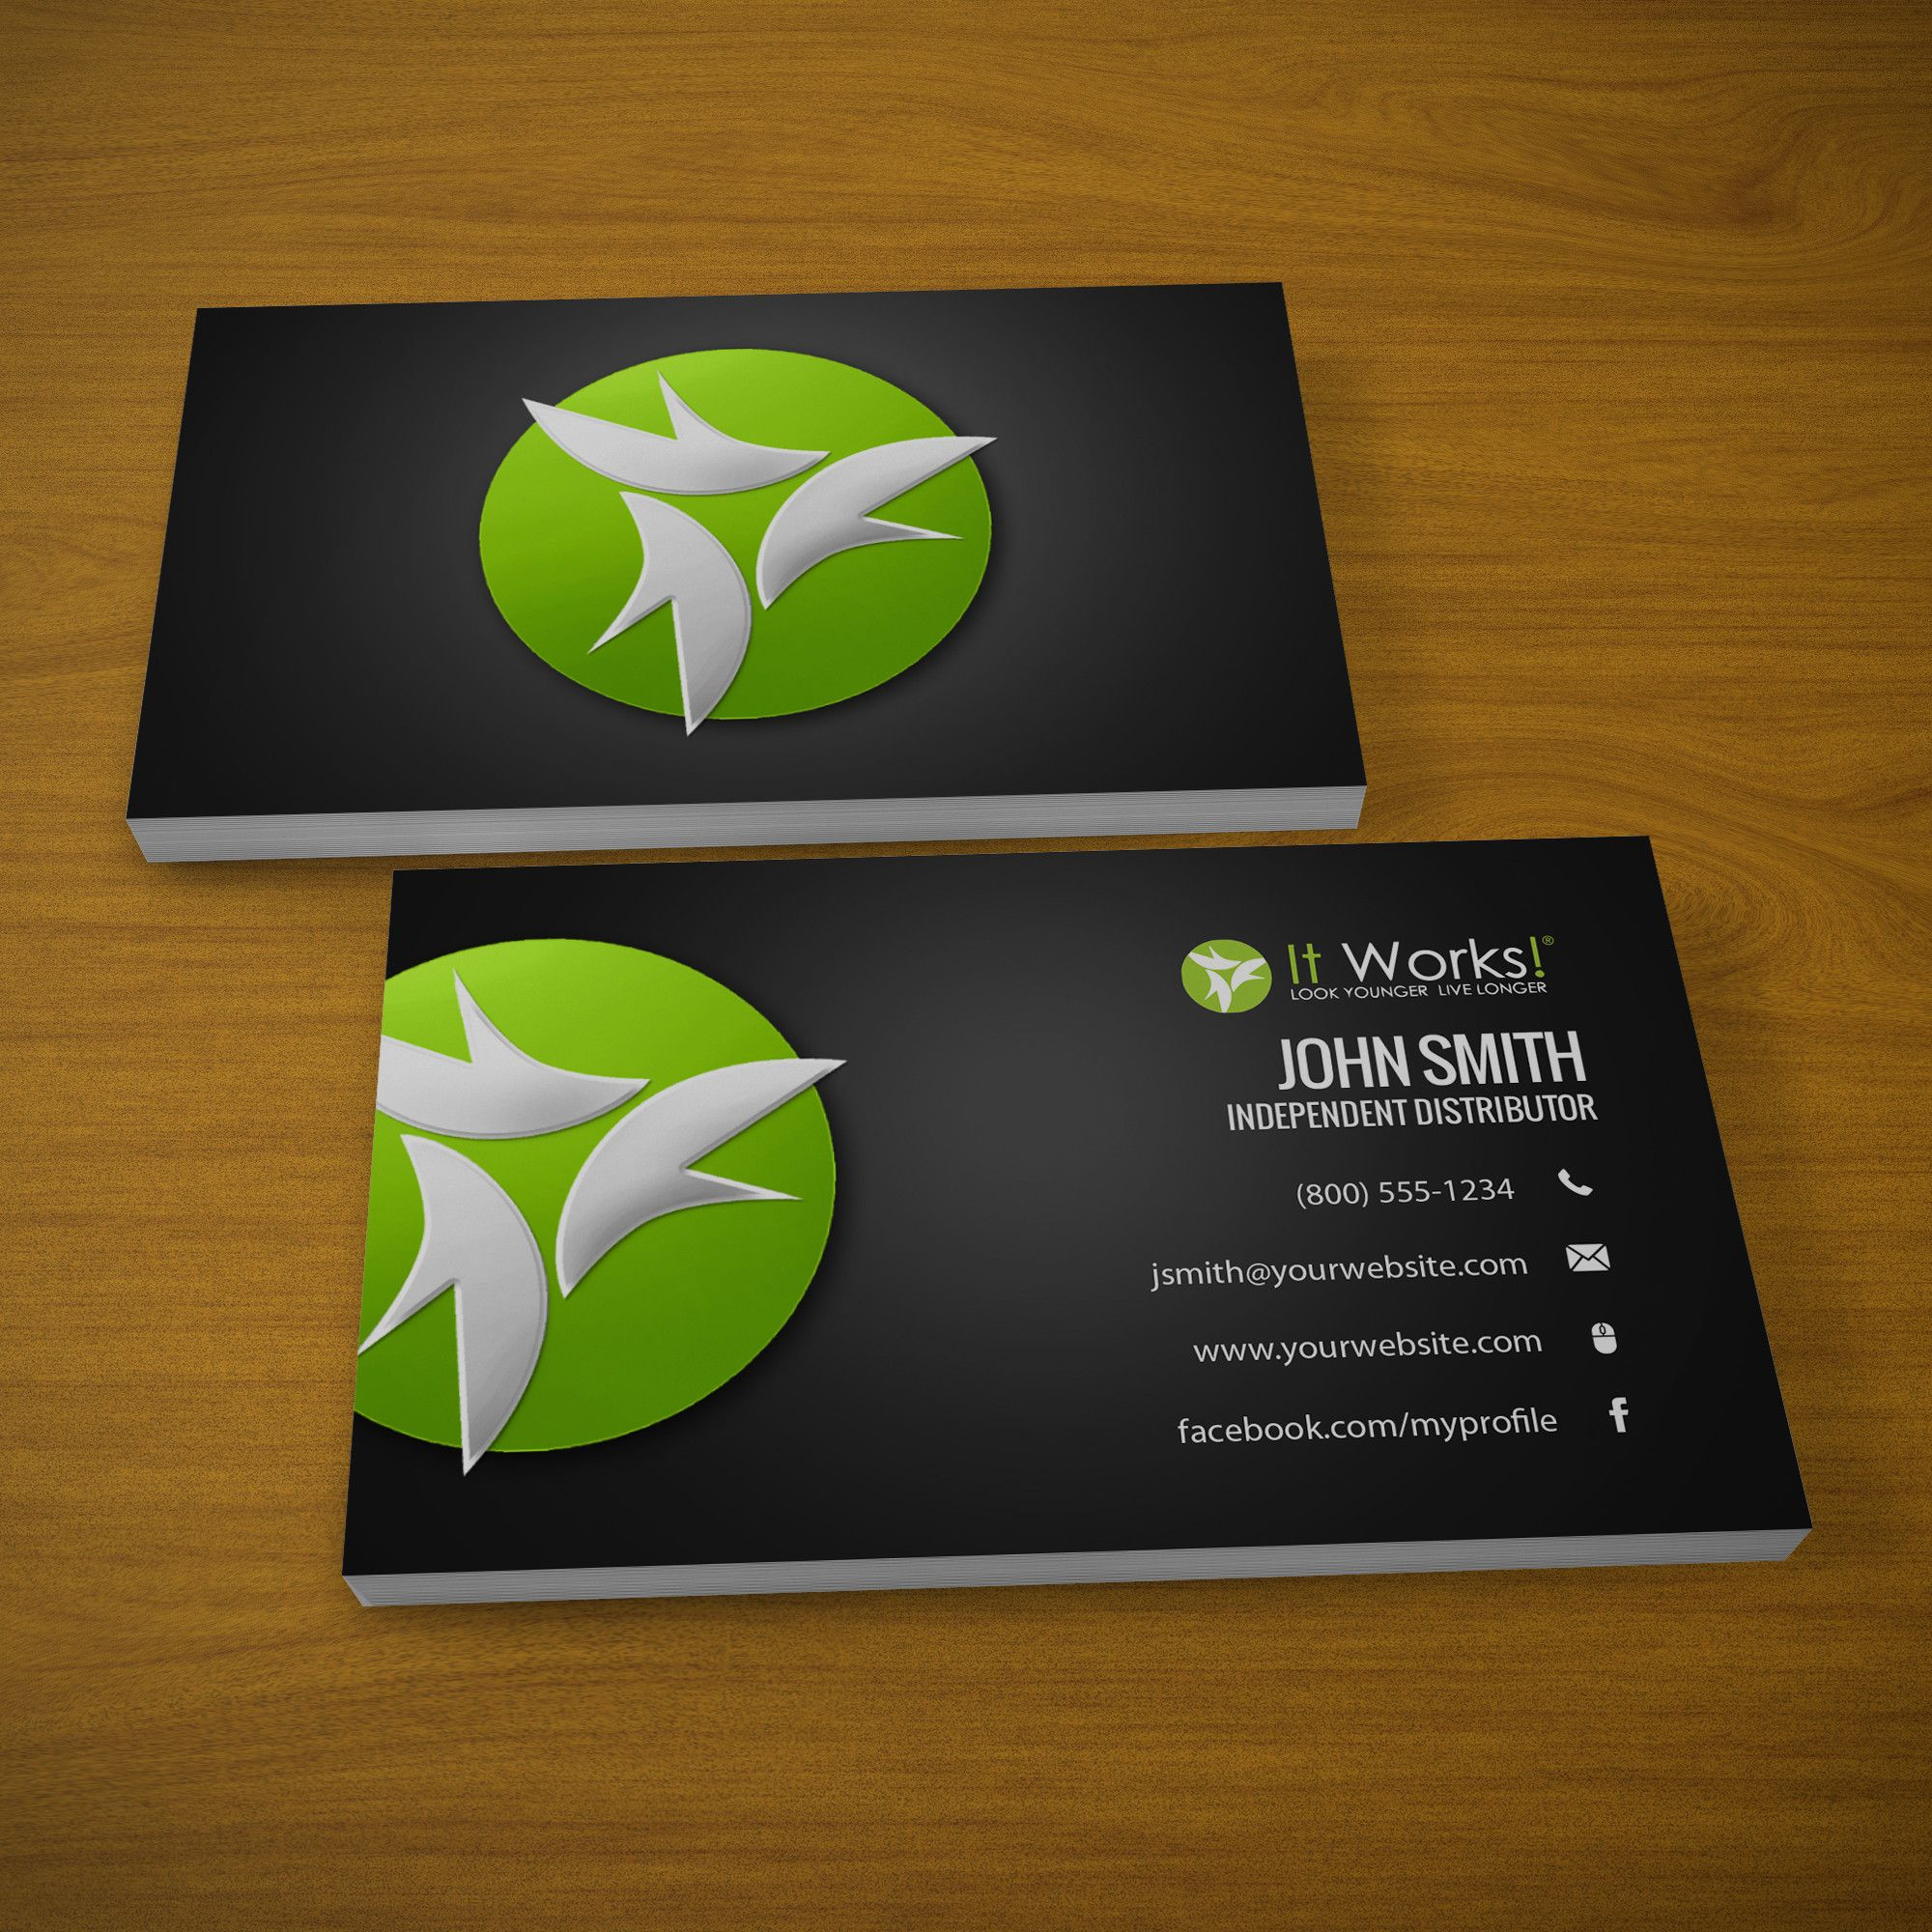 New Business Cards Just For It Works Distributors Mlm Itworks Hair Nails Keto Natural Print Pap Free Business Cards Printing Business Cards It Works